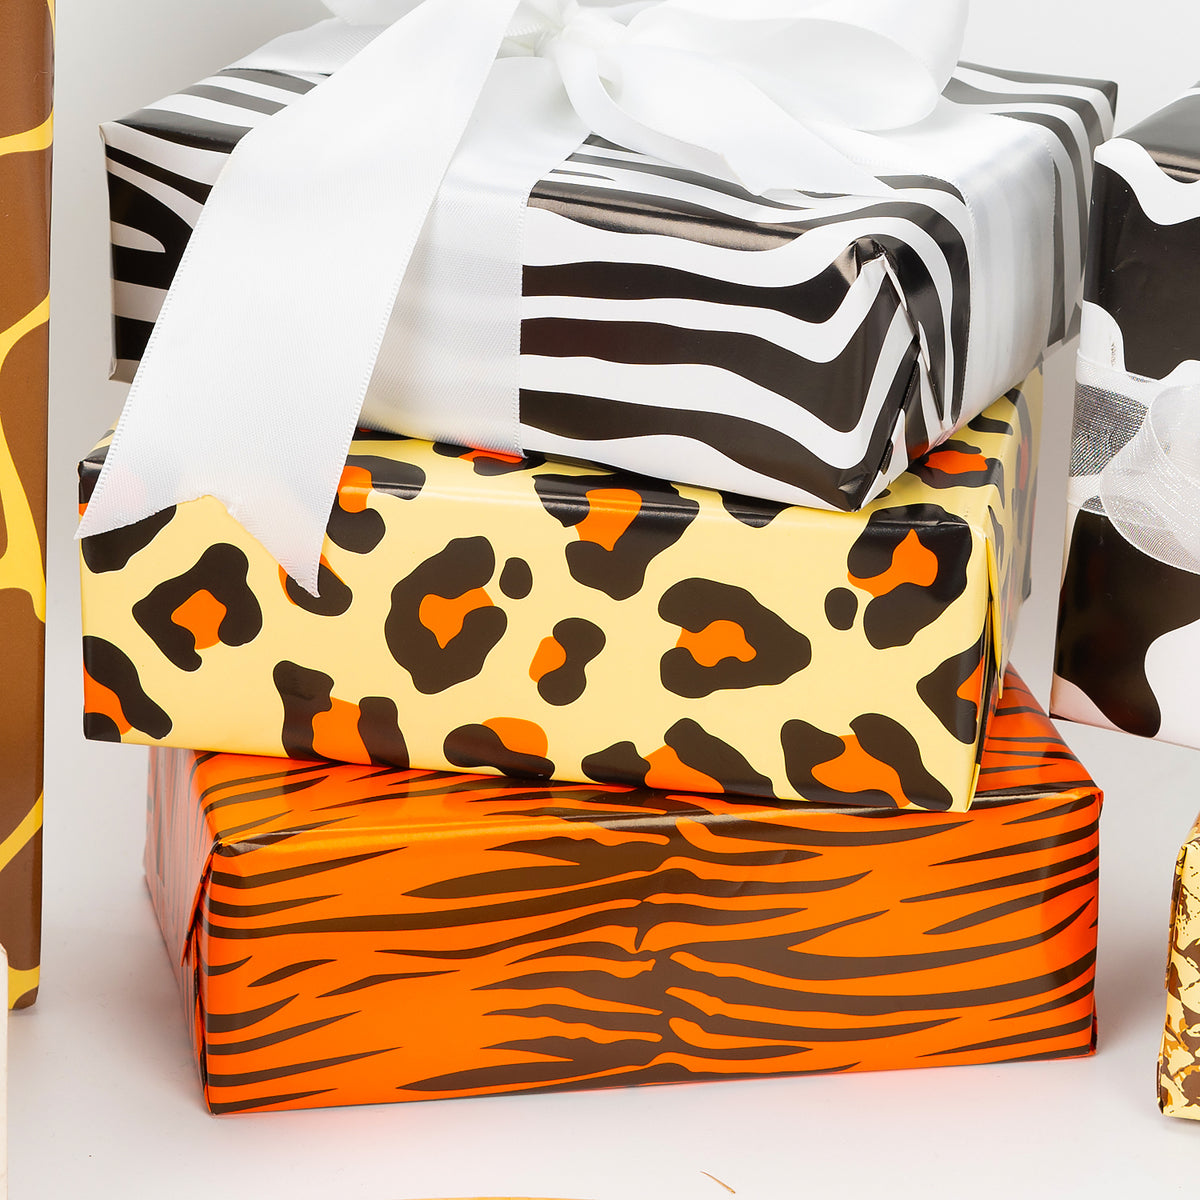 Wrapaholic-Leopard- Print-Gift-Wrapping-Paper-Sheet-5